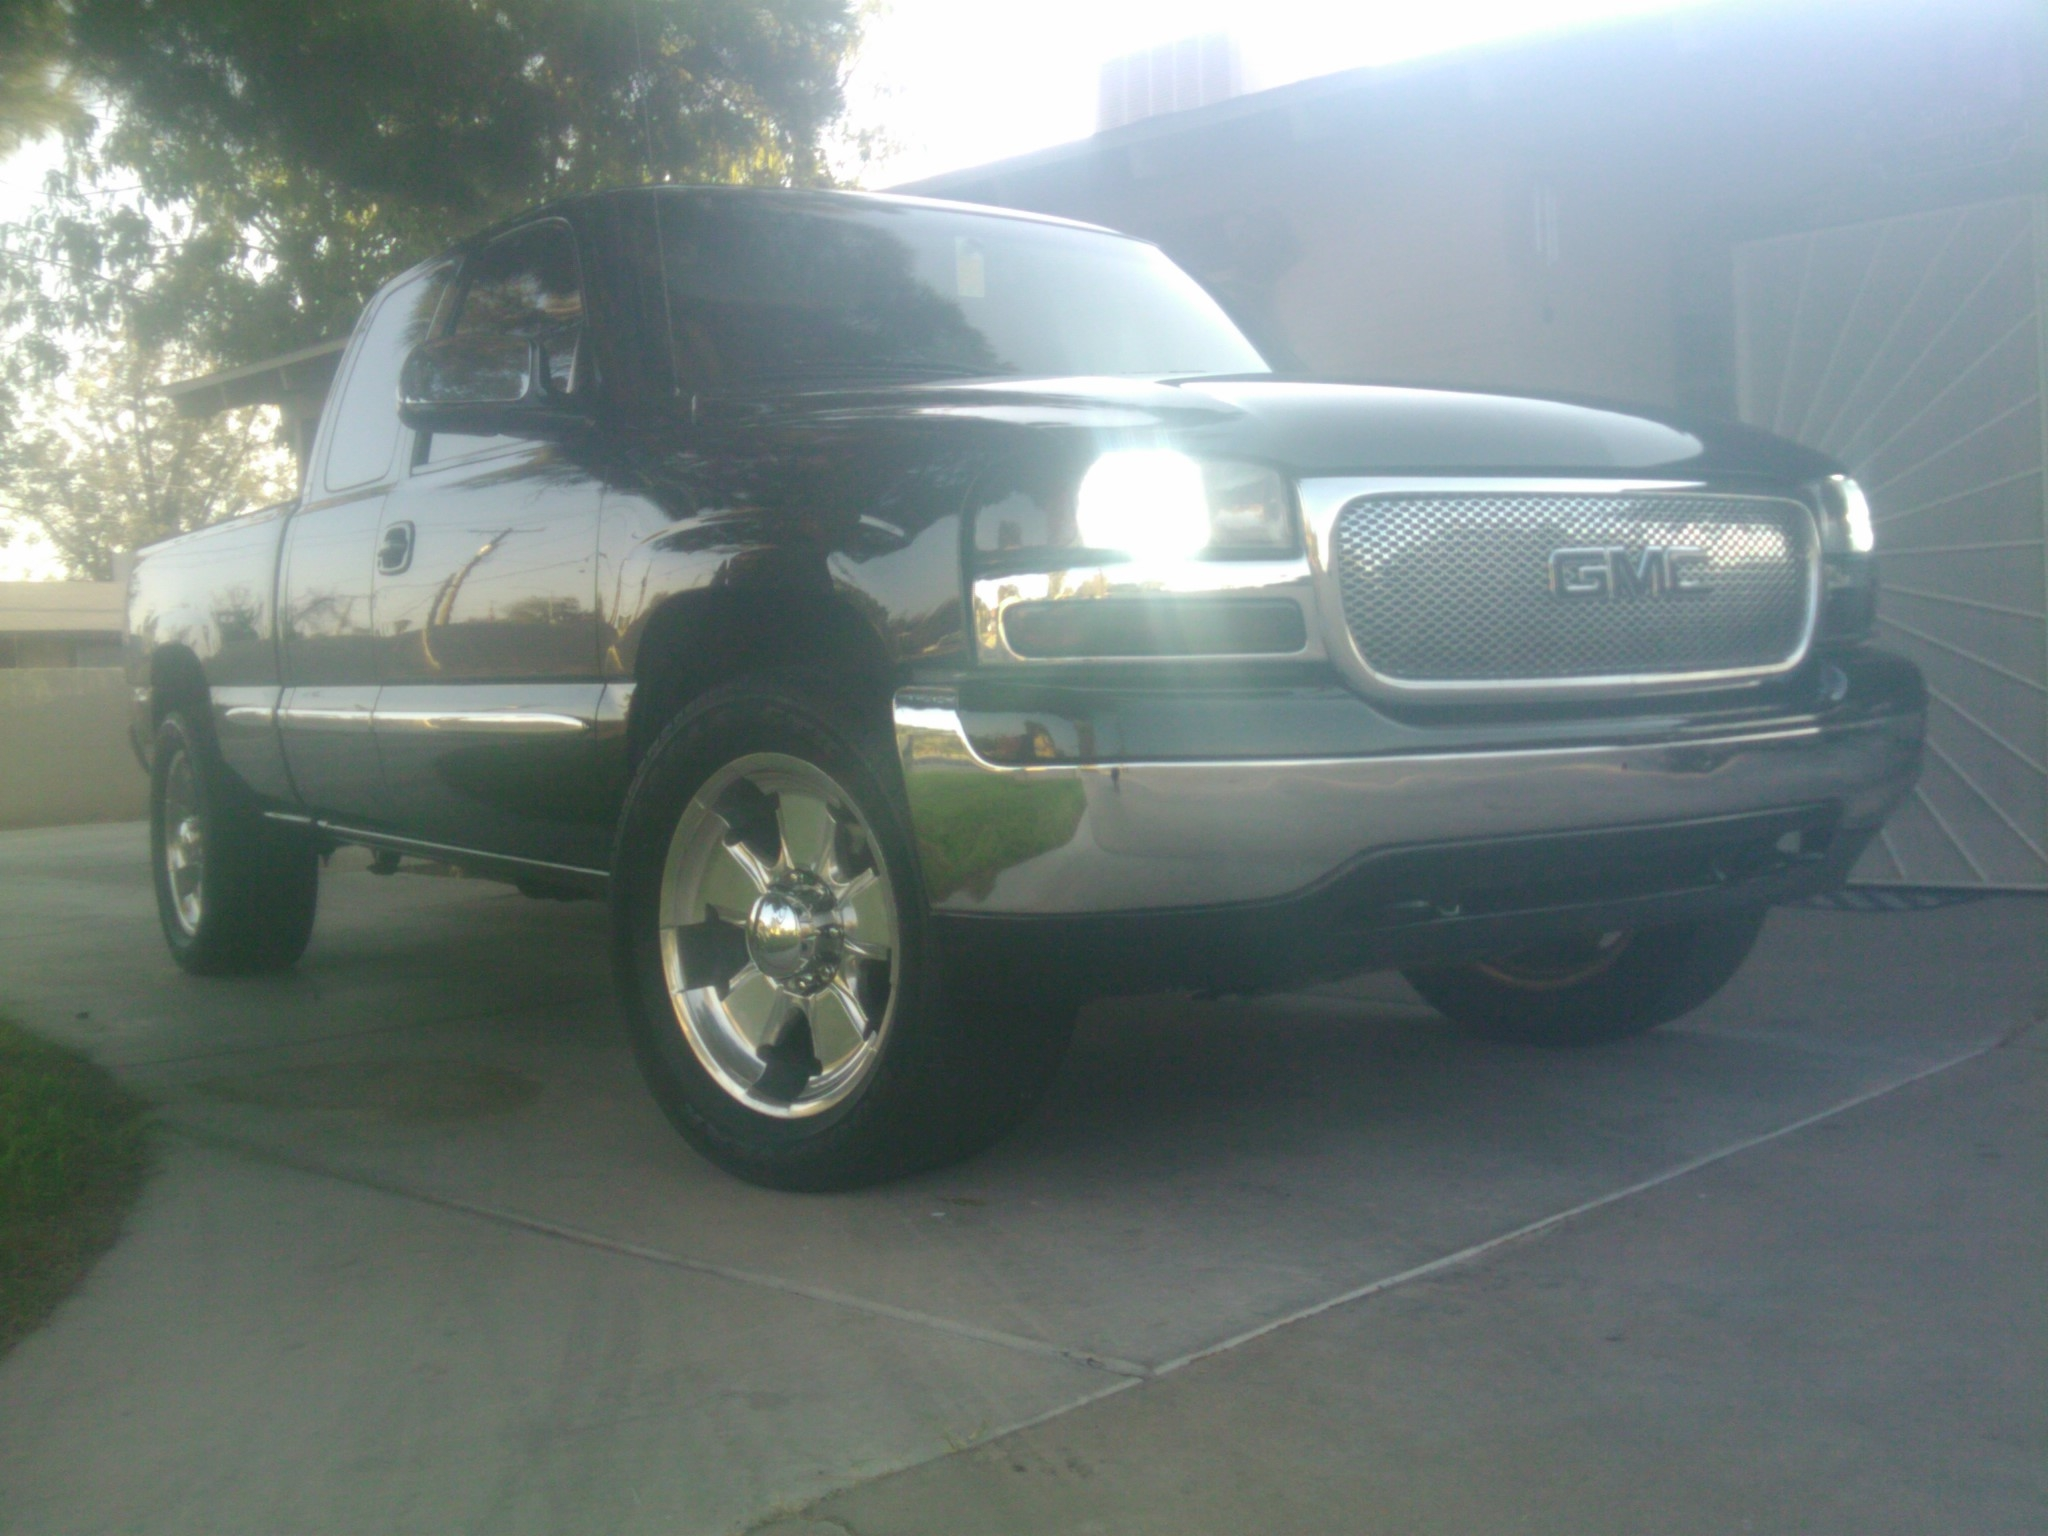 Undercover2500's 2000 GMC 2500 HD Extended Cab